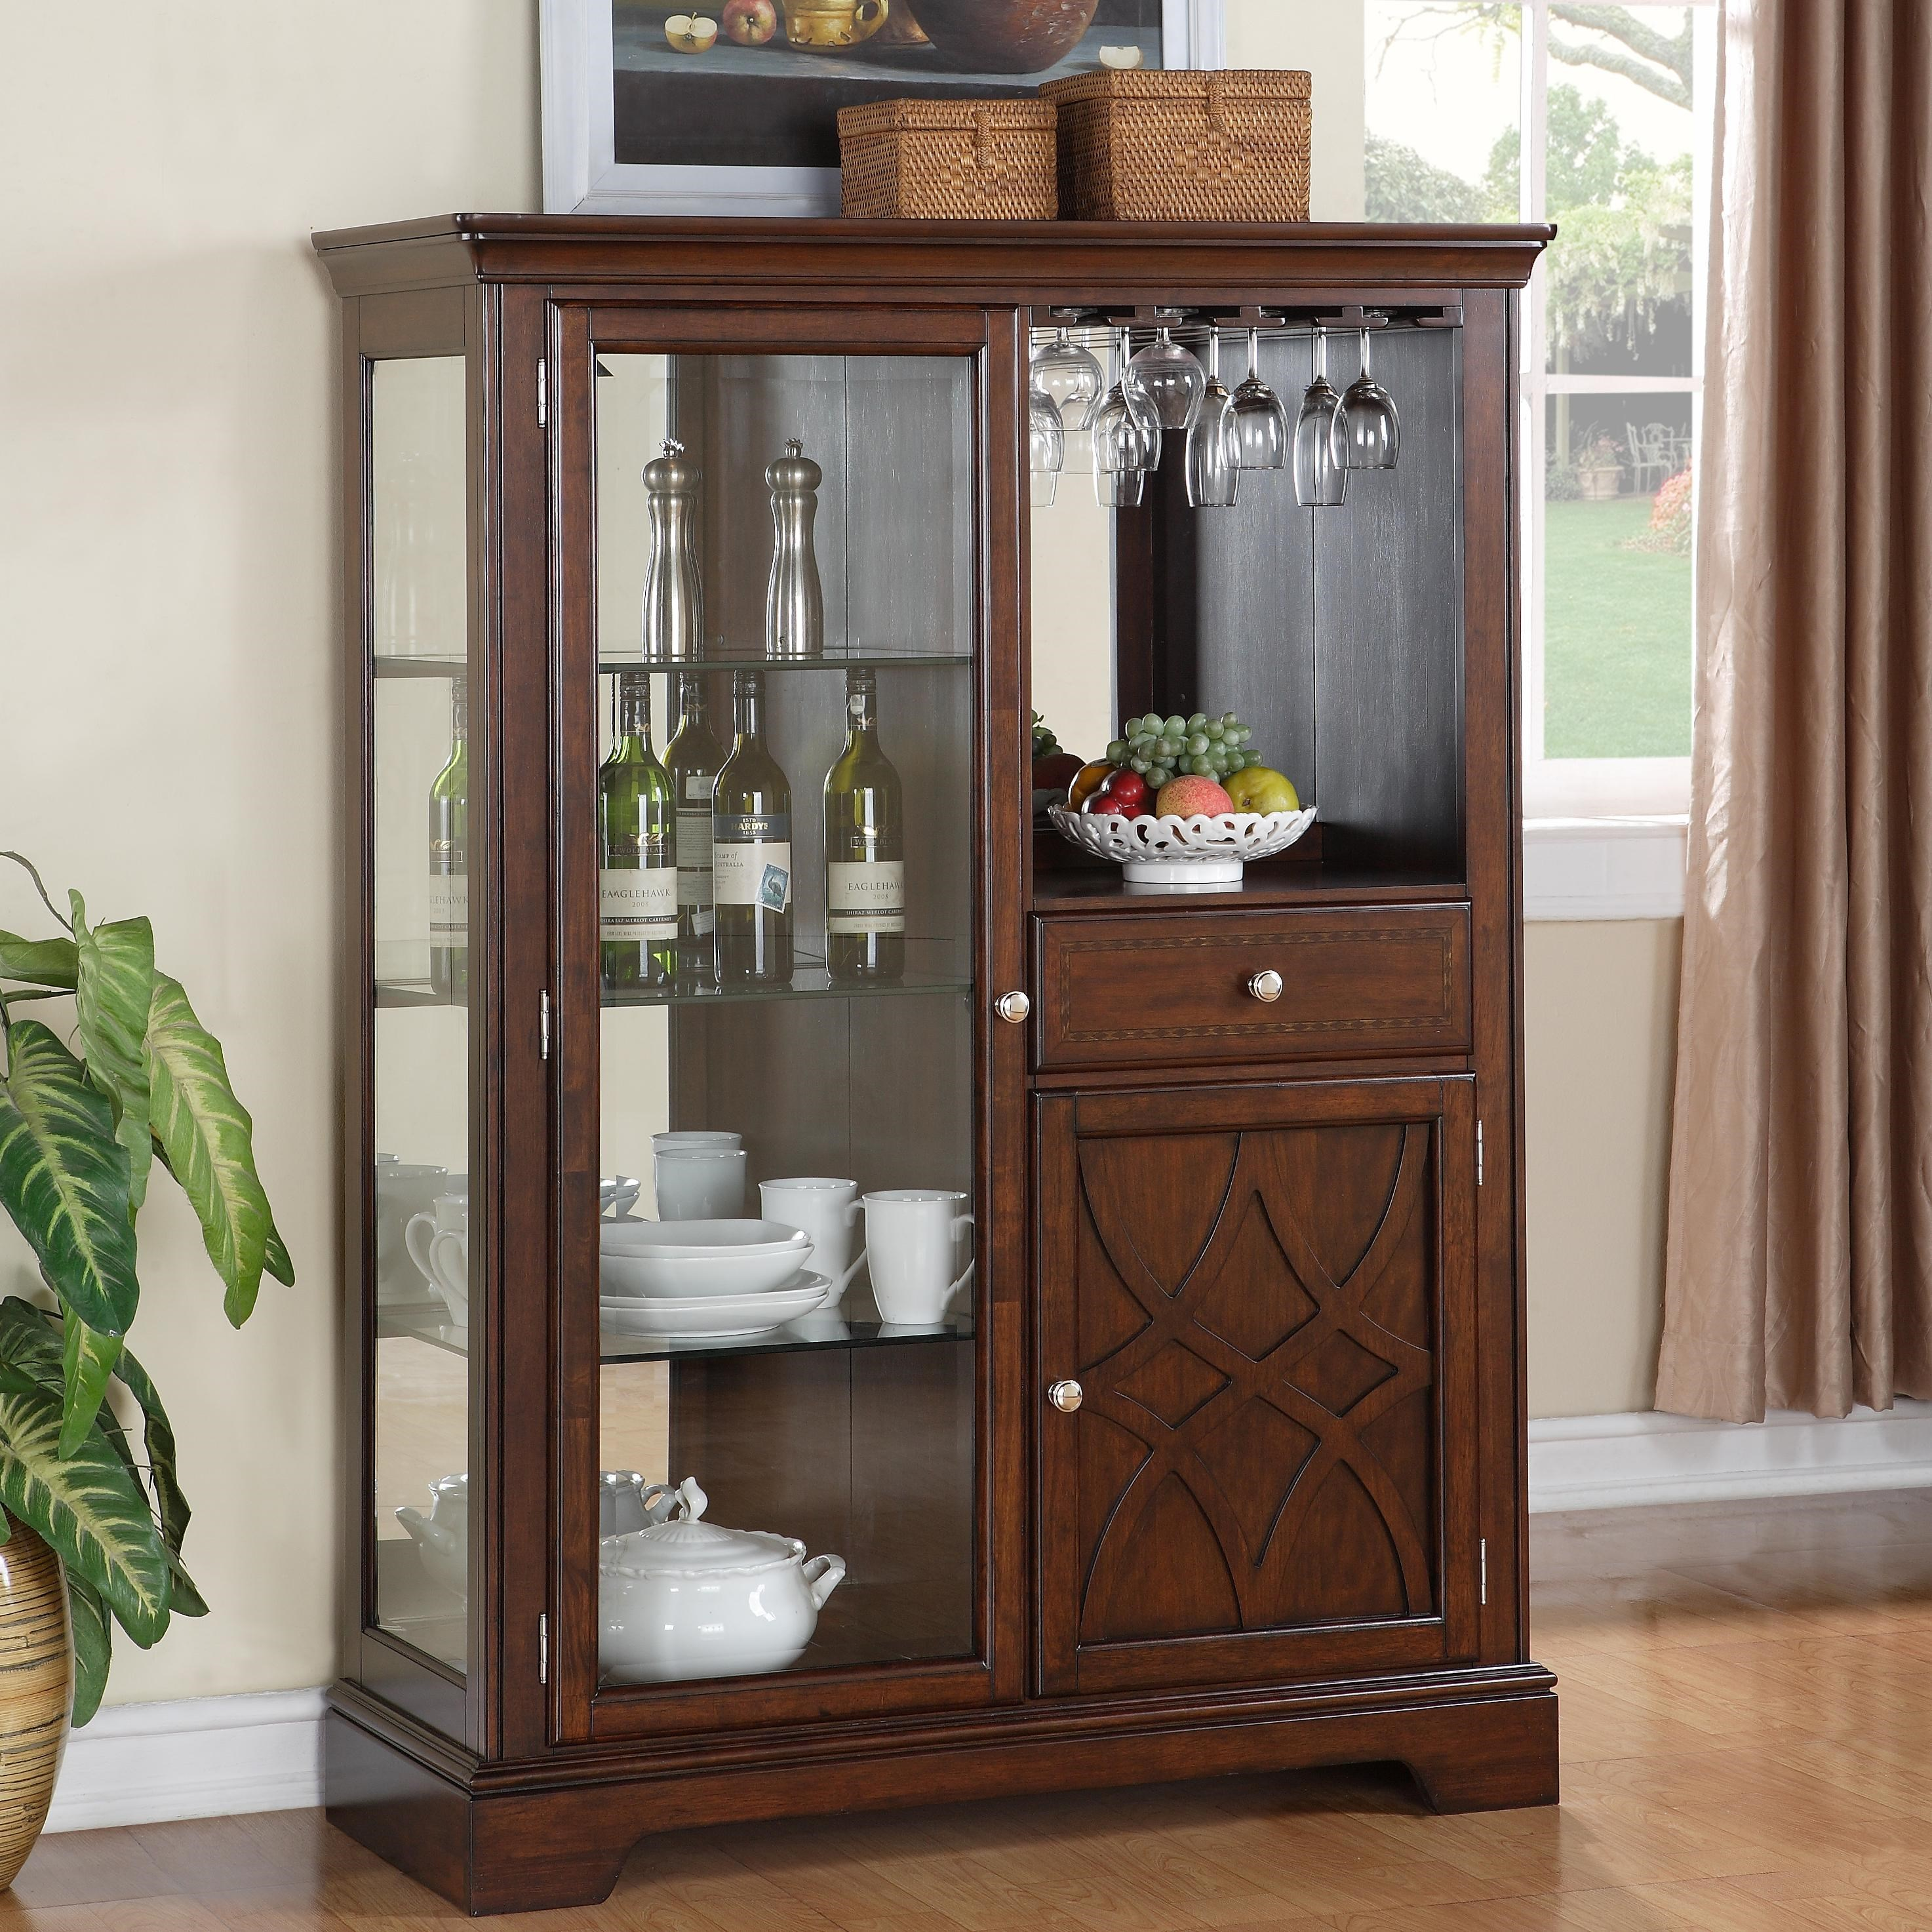 Merveilleux Standard Furniture Woodmont 2 Door Display Curio Cabinet With 1 Drawer